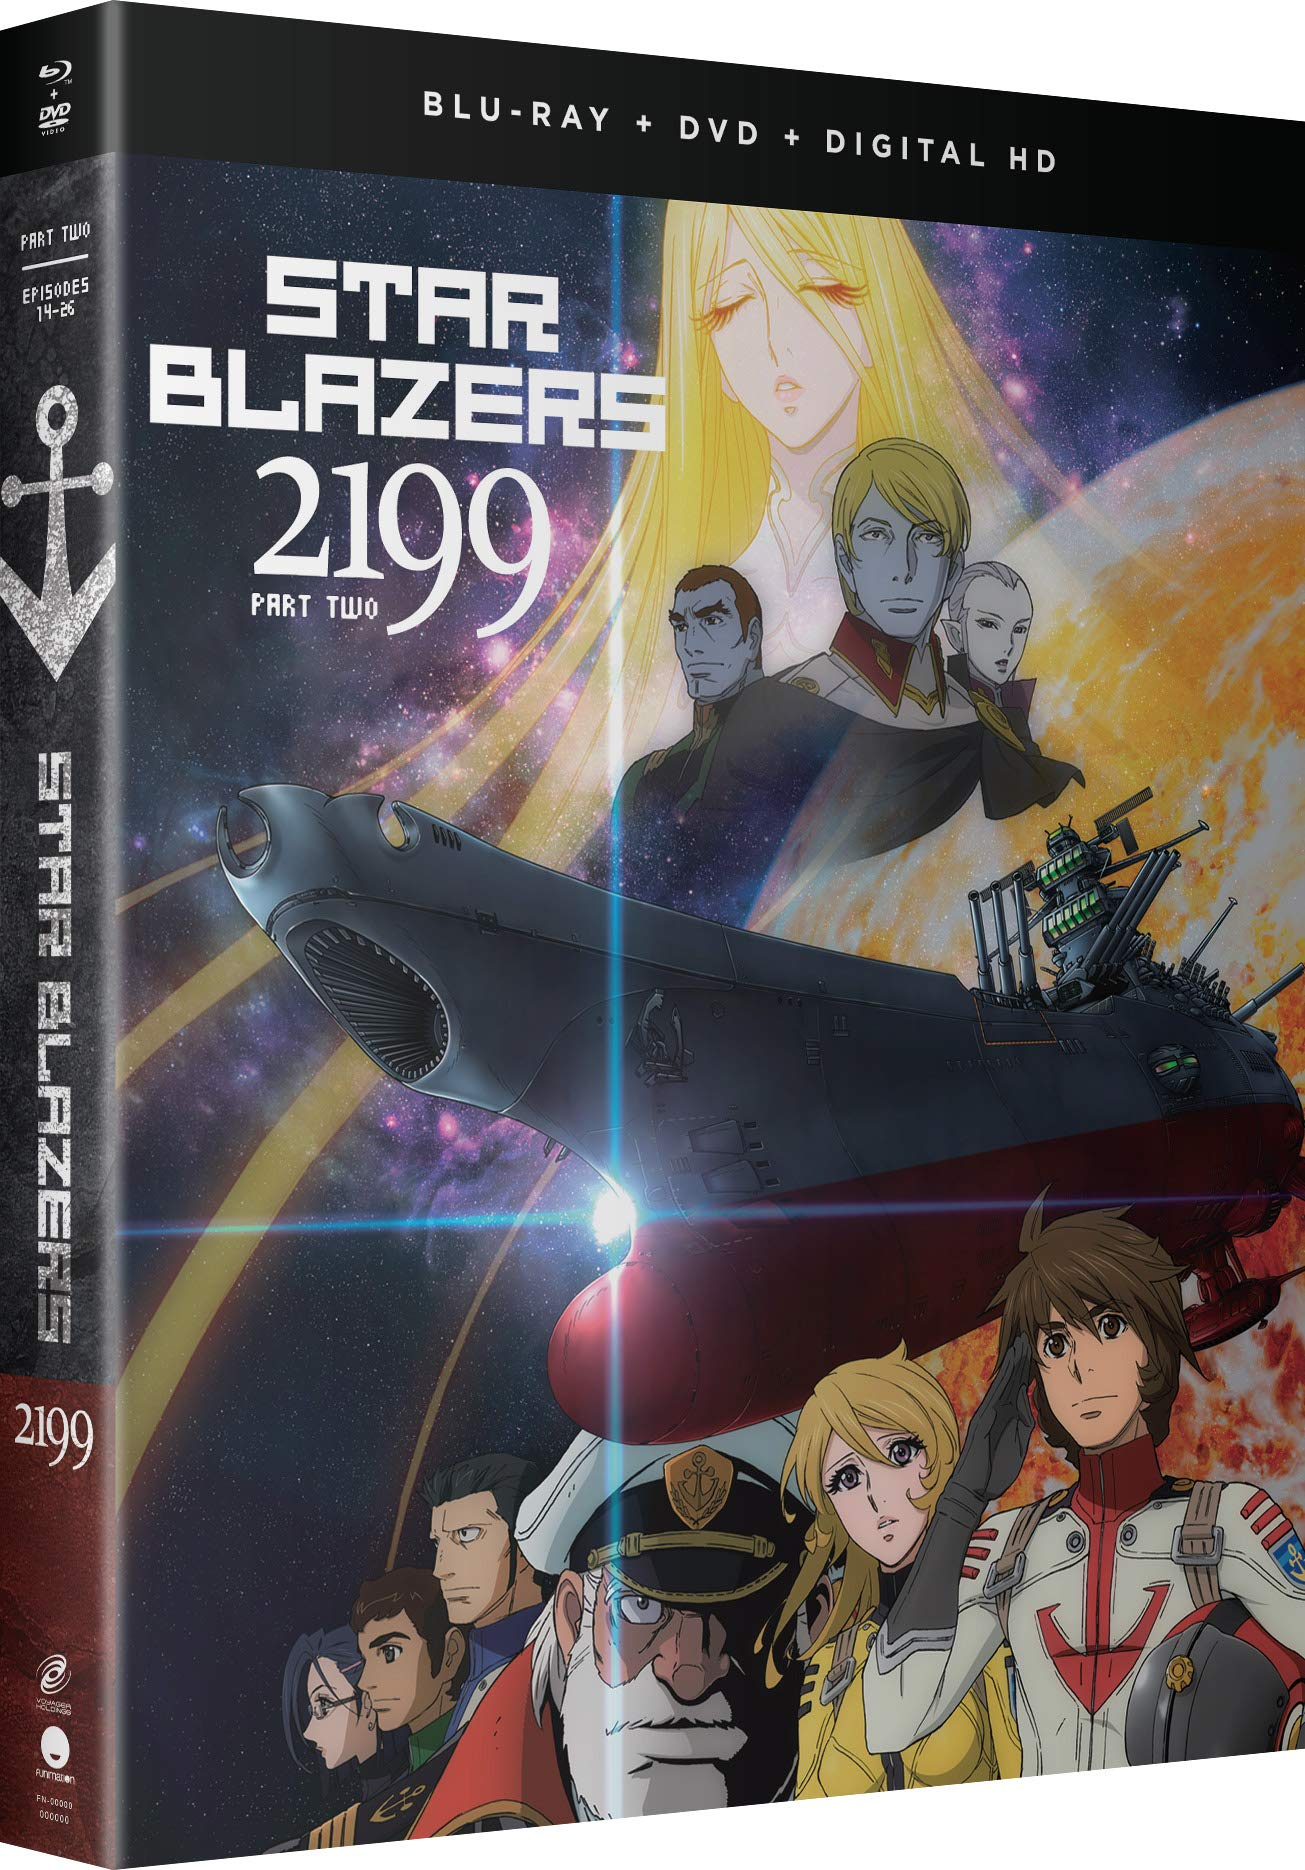 Blu-ray : Star Blazers: Space Battleship Yamato 2199 - Part Two (With DVD, Boxed Set, Subtitled, Digital Copy)